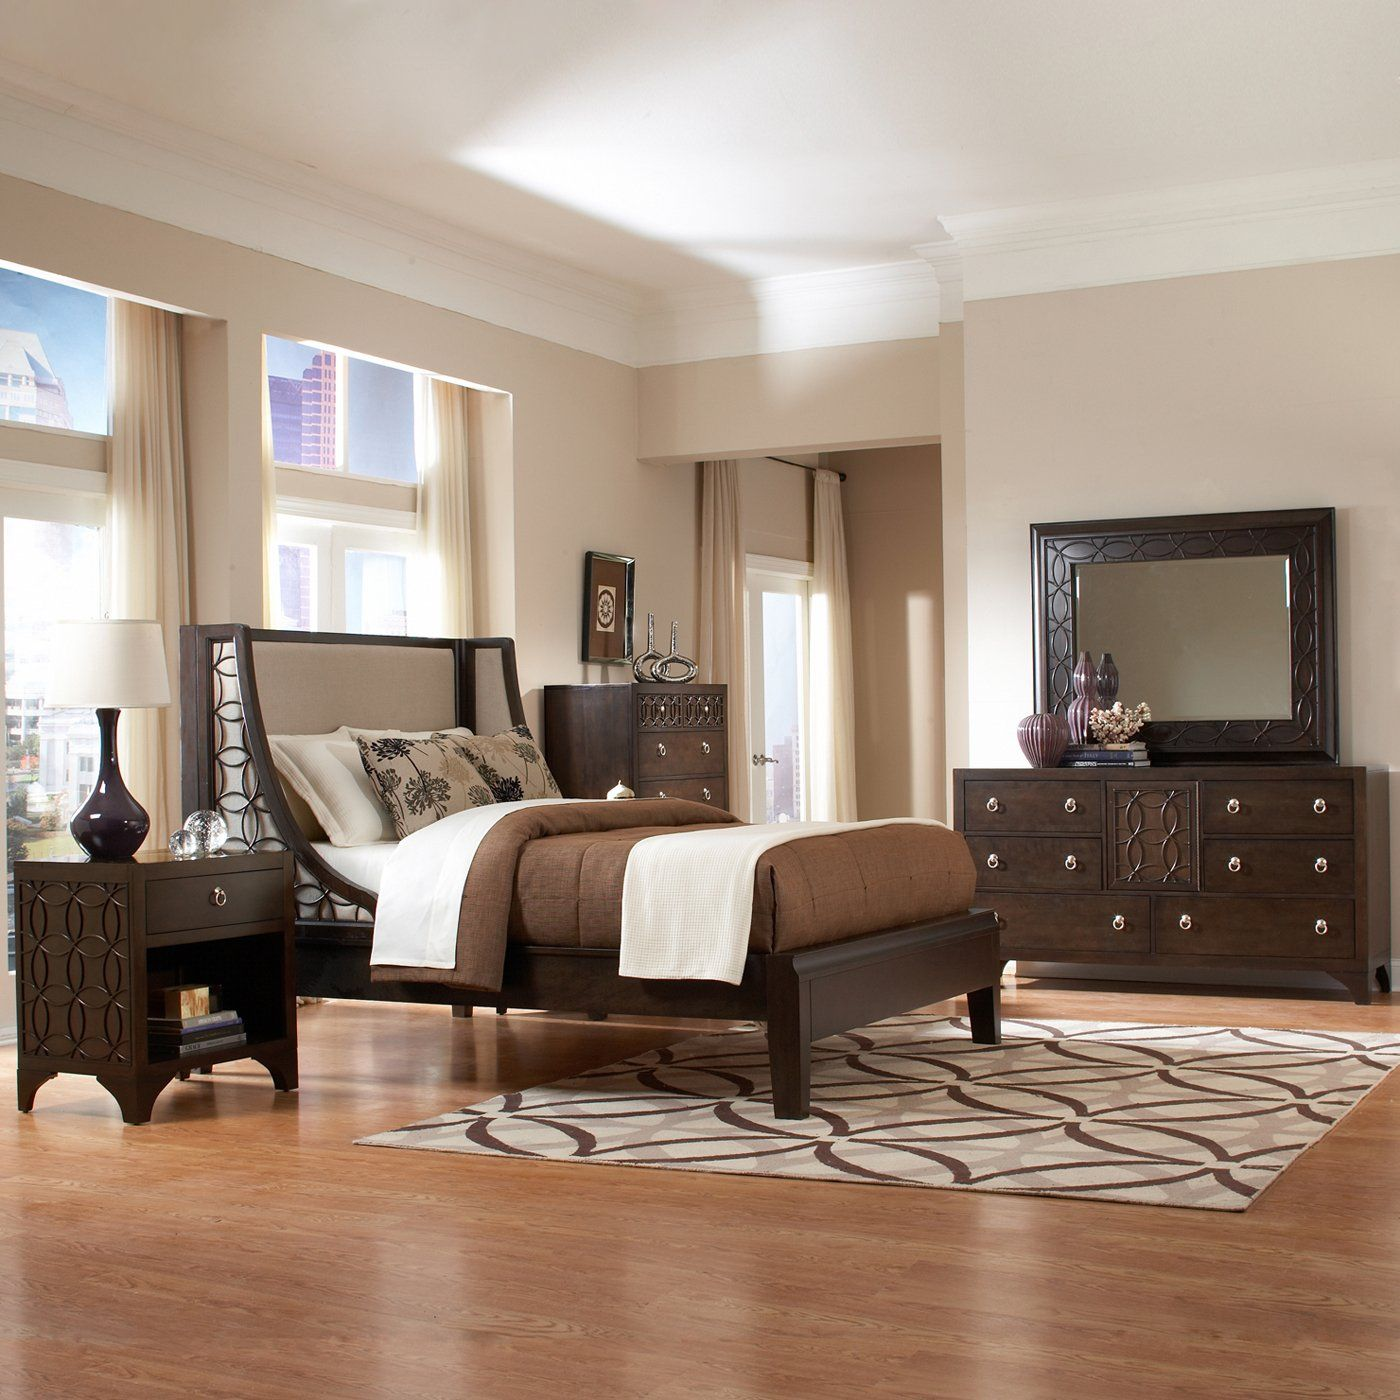 Master bedroom headboard design ideas  Like the shape of this headboard  For the Home  Pinterest